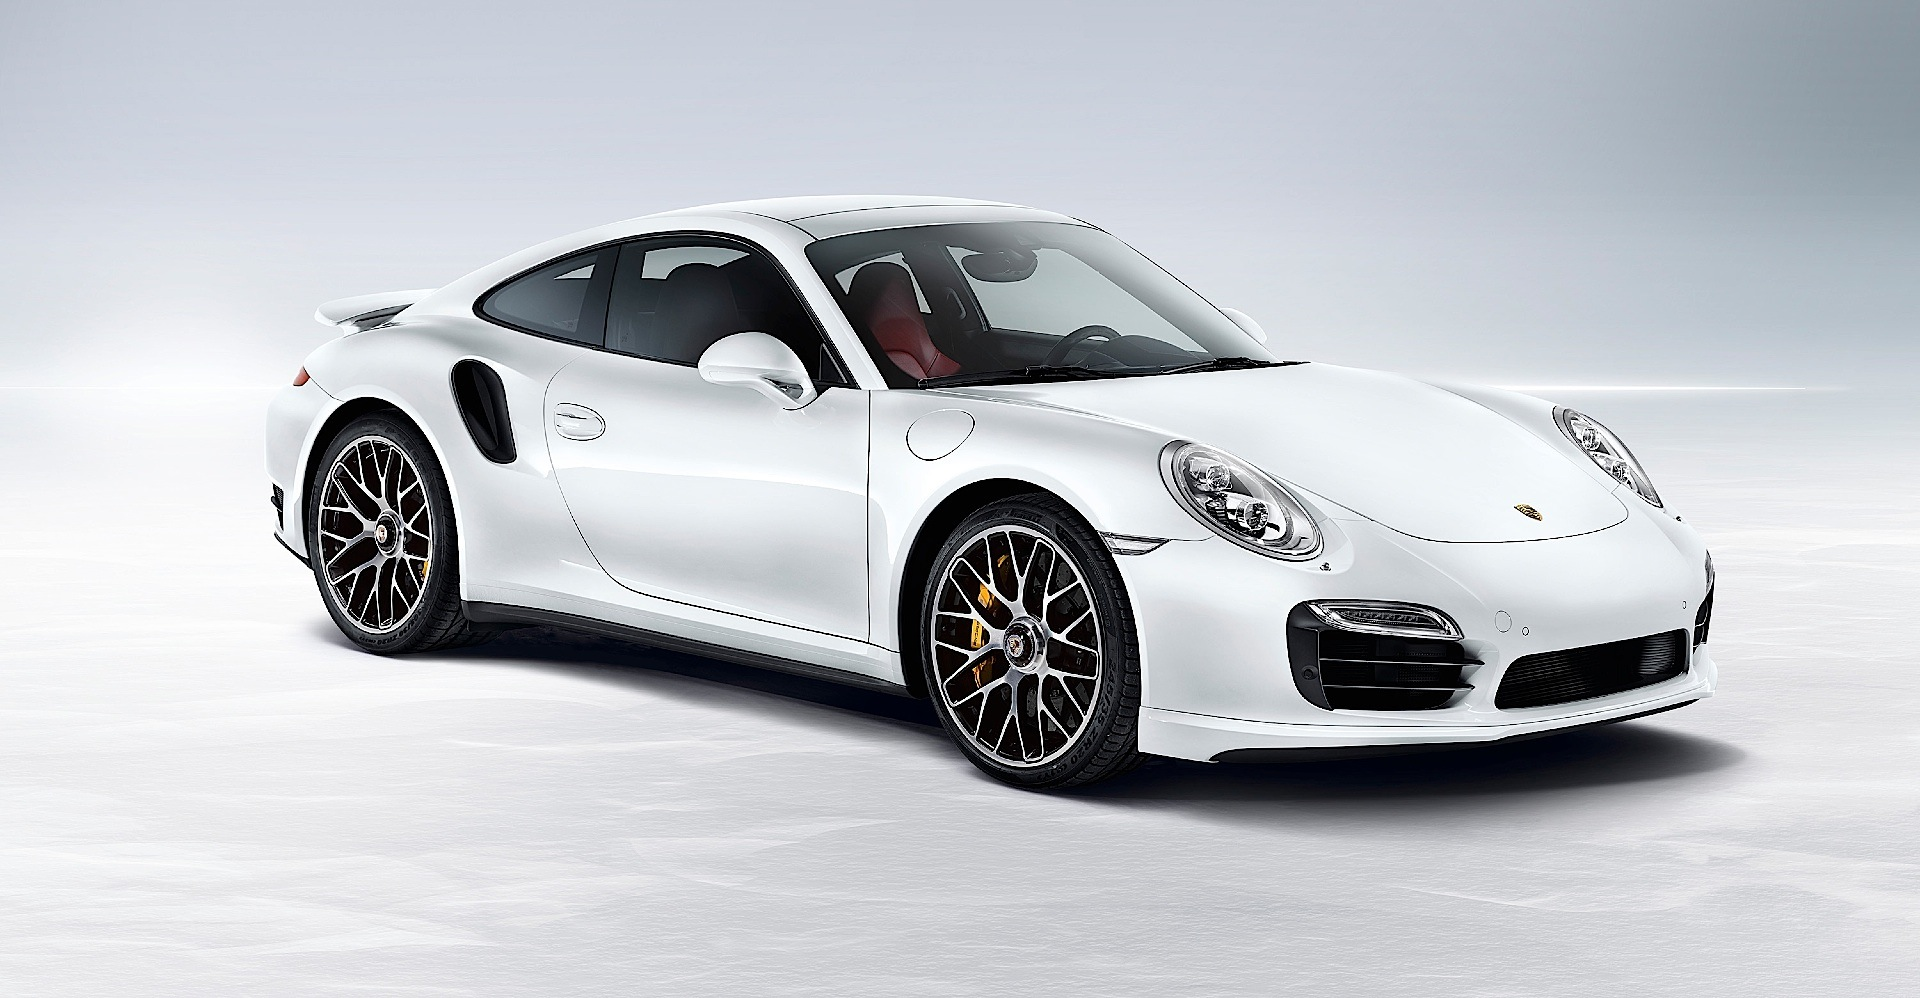 porsche 911 and 911 turbo s unveiled details images. Black Bedroom Furniture Sets. Home Design Ideas